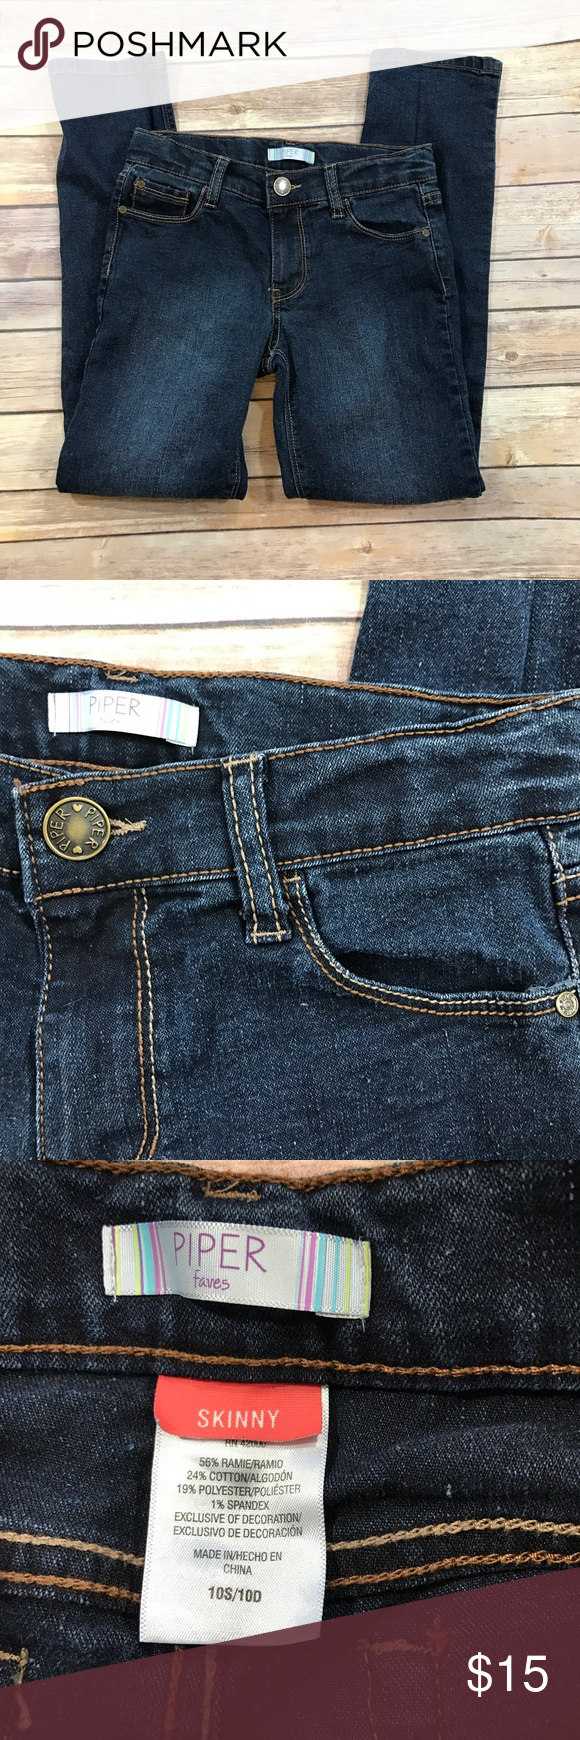 Girls Piper skinny jeans Skinny jeans in very good condition. Stretchy blend.  Ships next day. Piper Bottoms Jeans